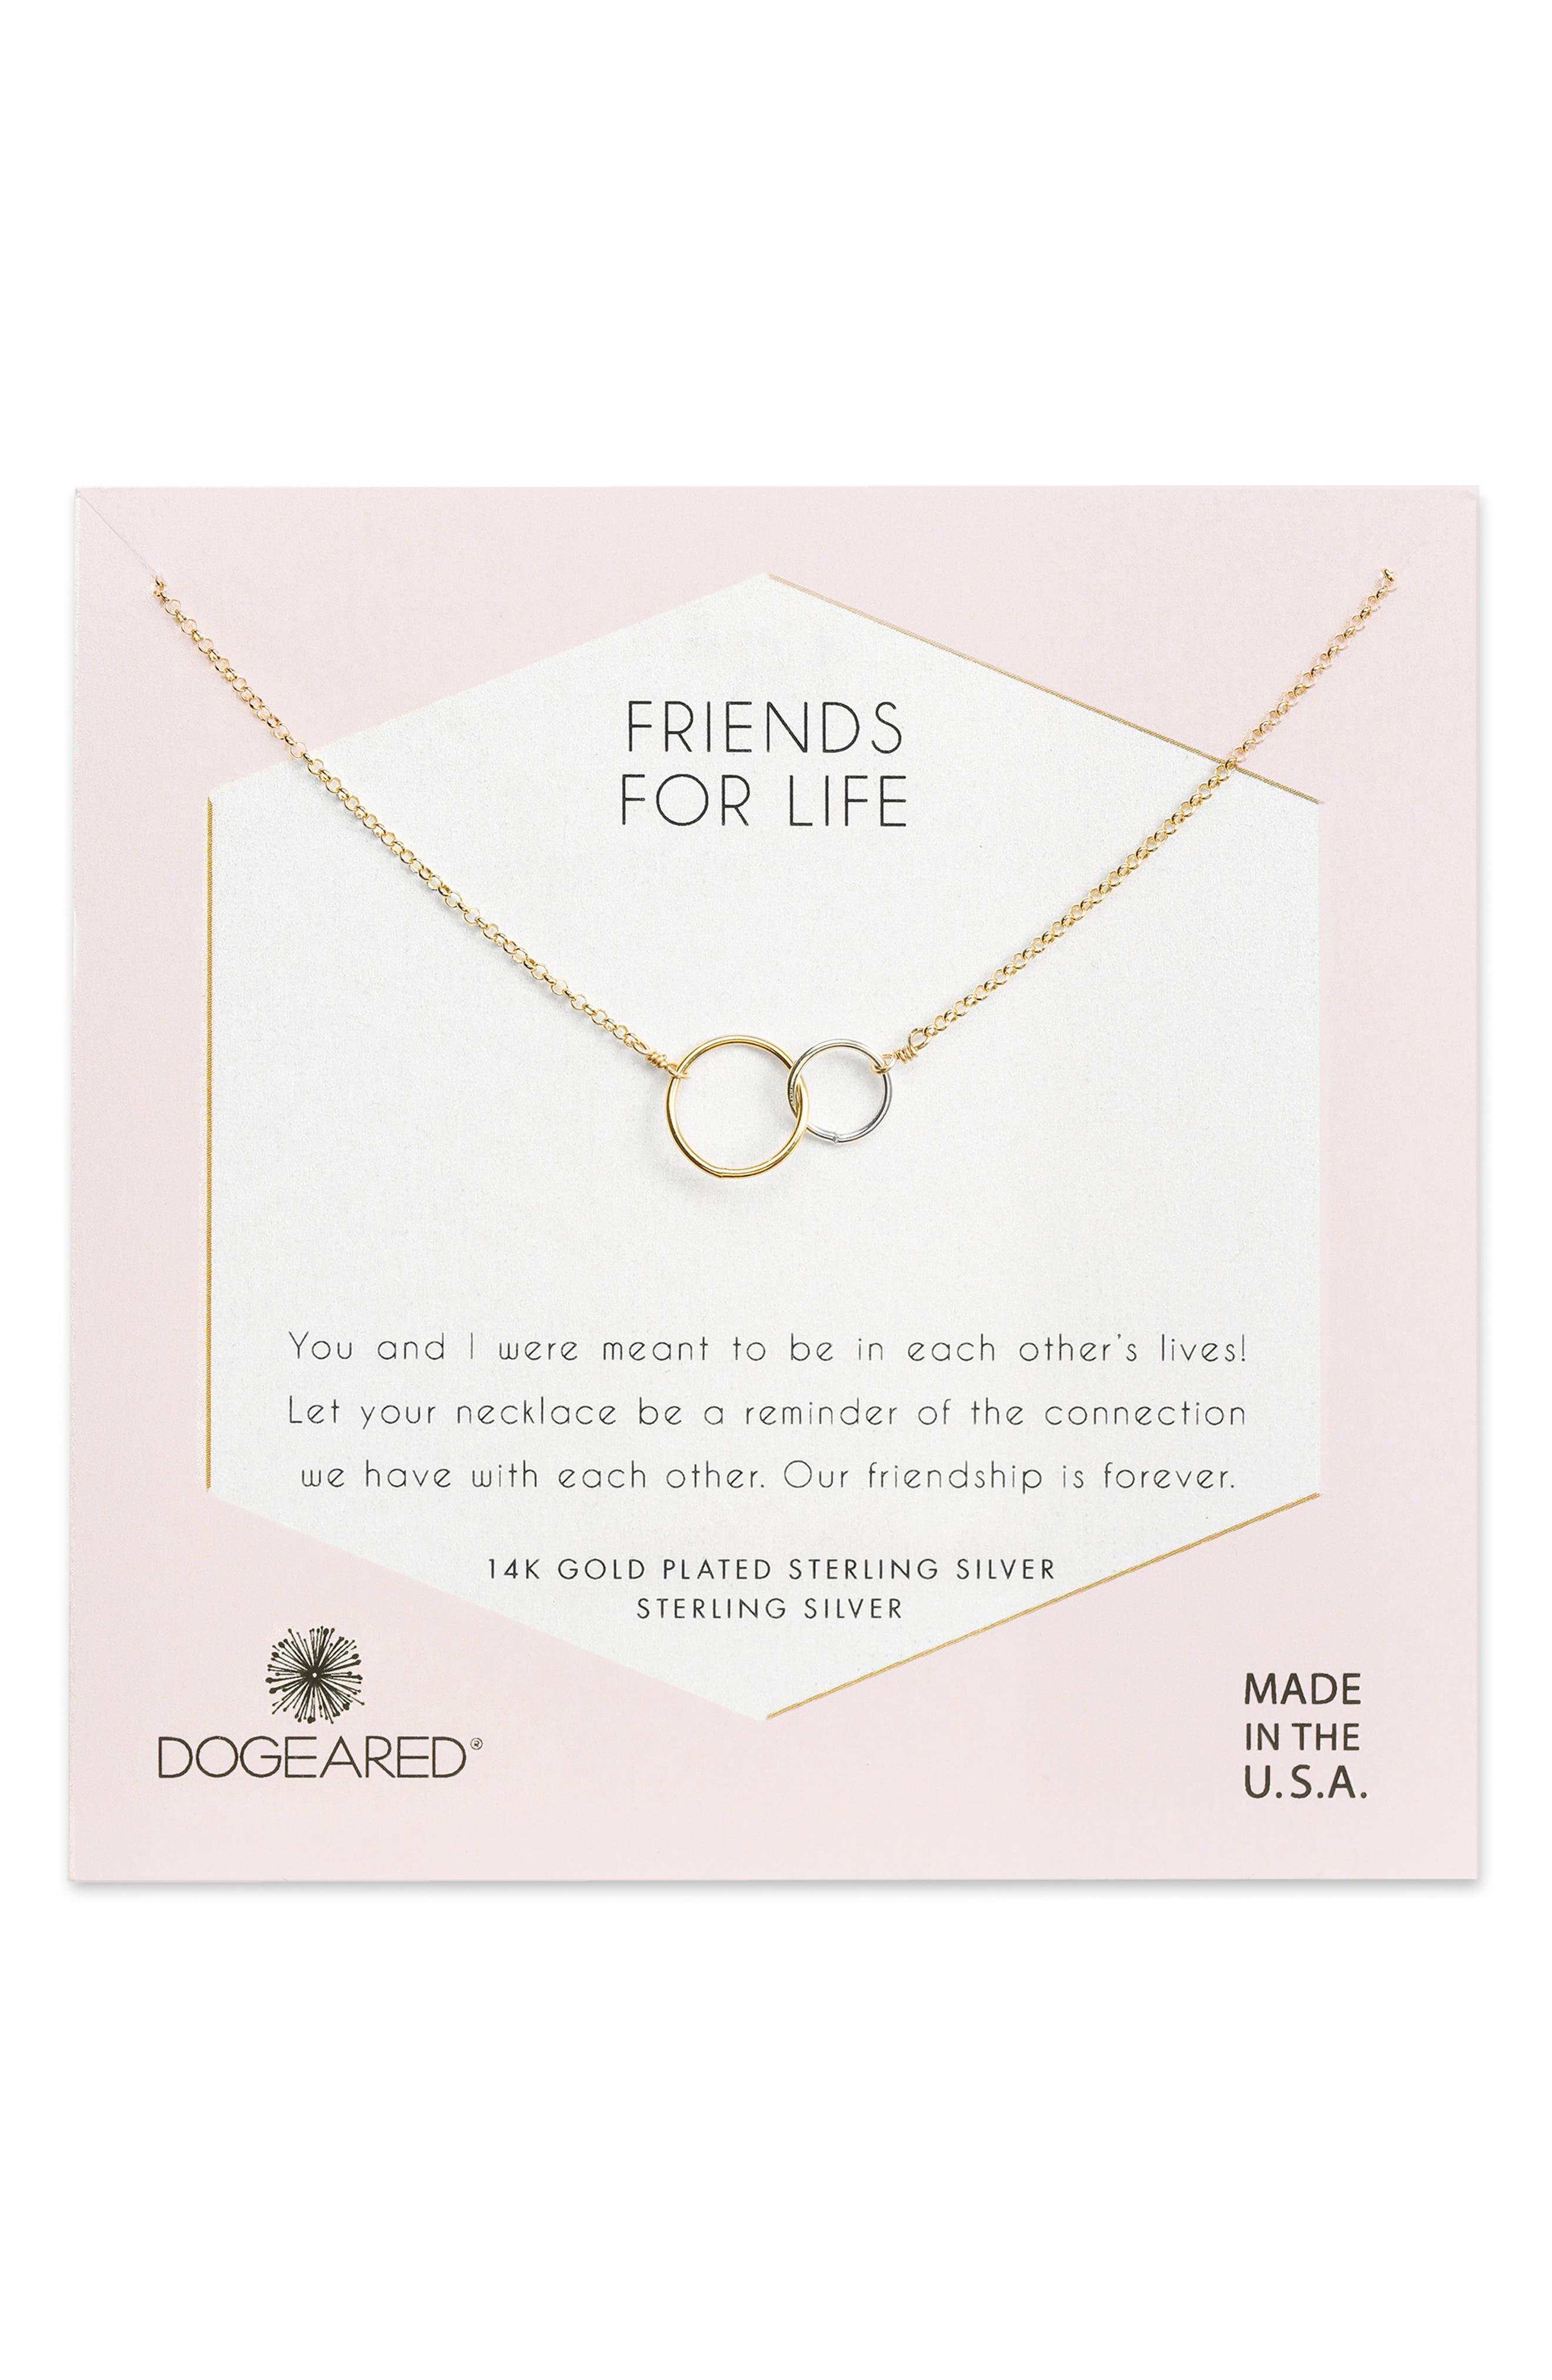 Friends for Life Necklace,                             Main thumbnail 2, color,